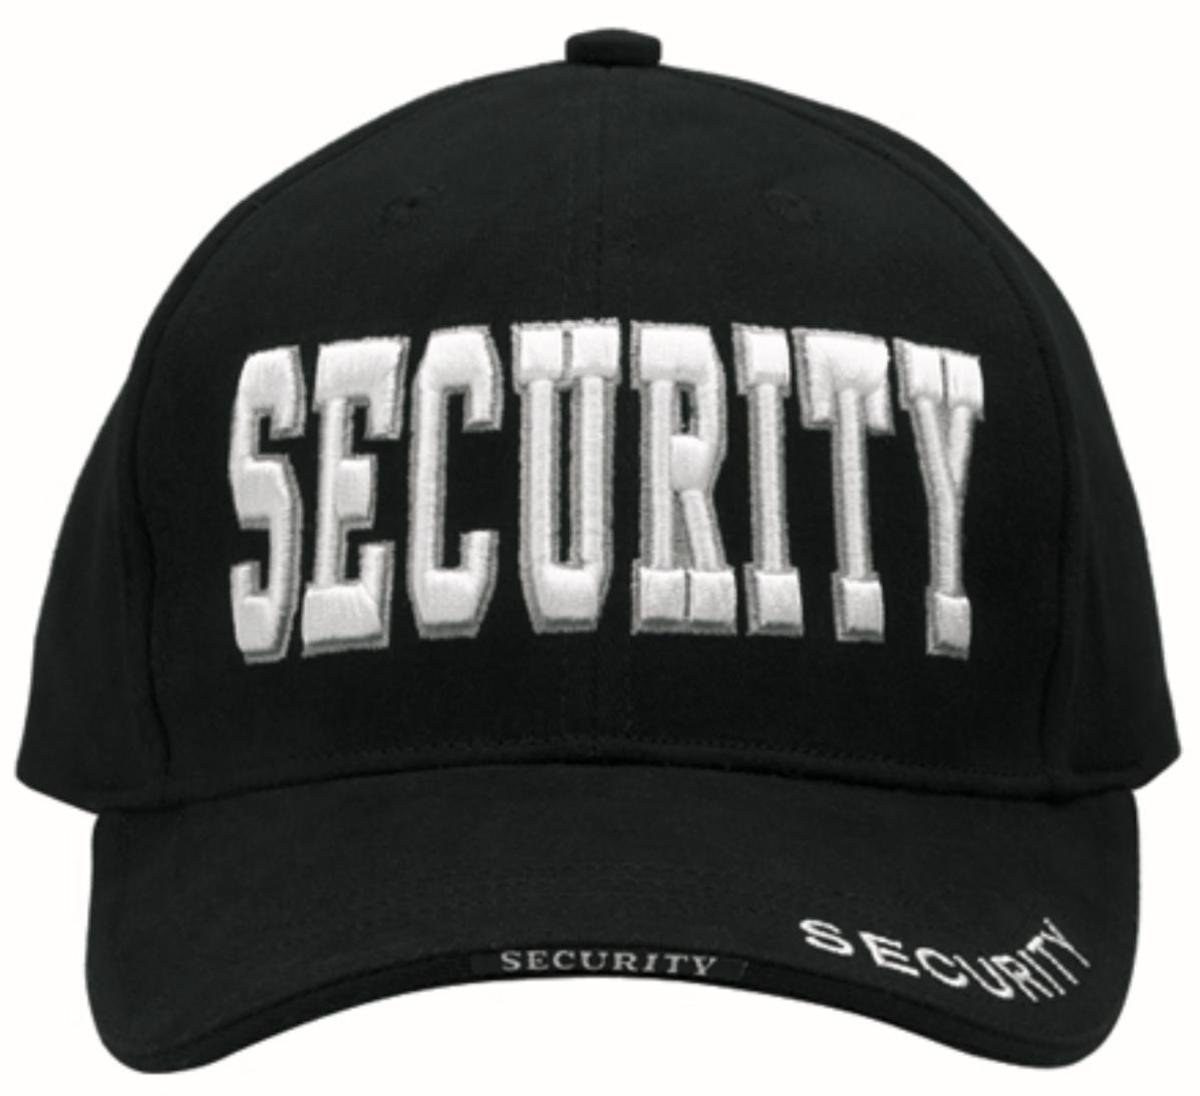 Deluxe, Low Profile Cap, Security - Black